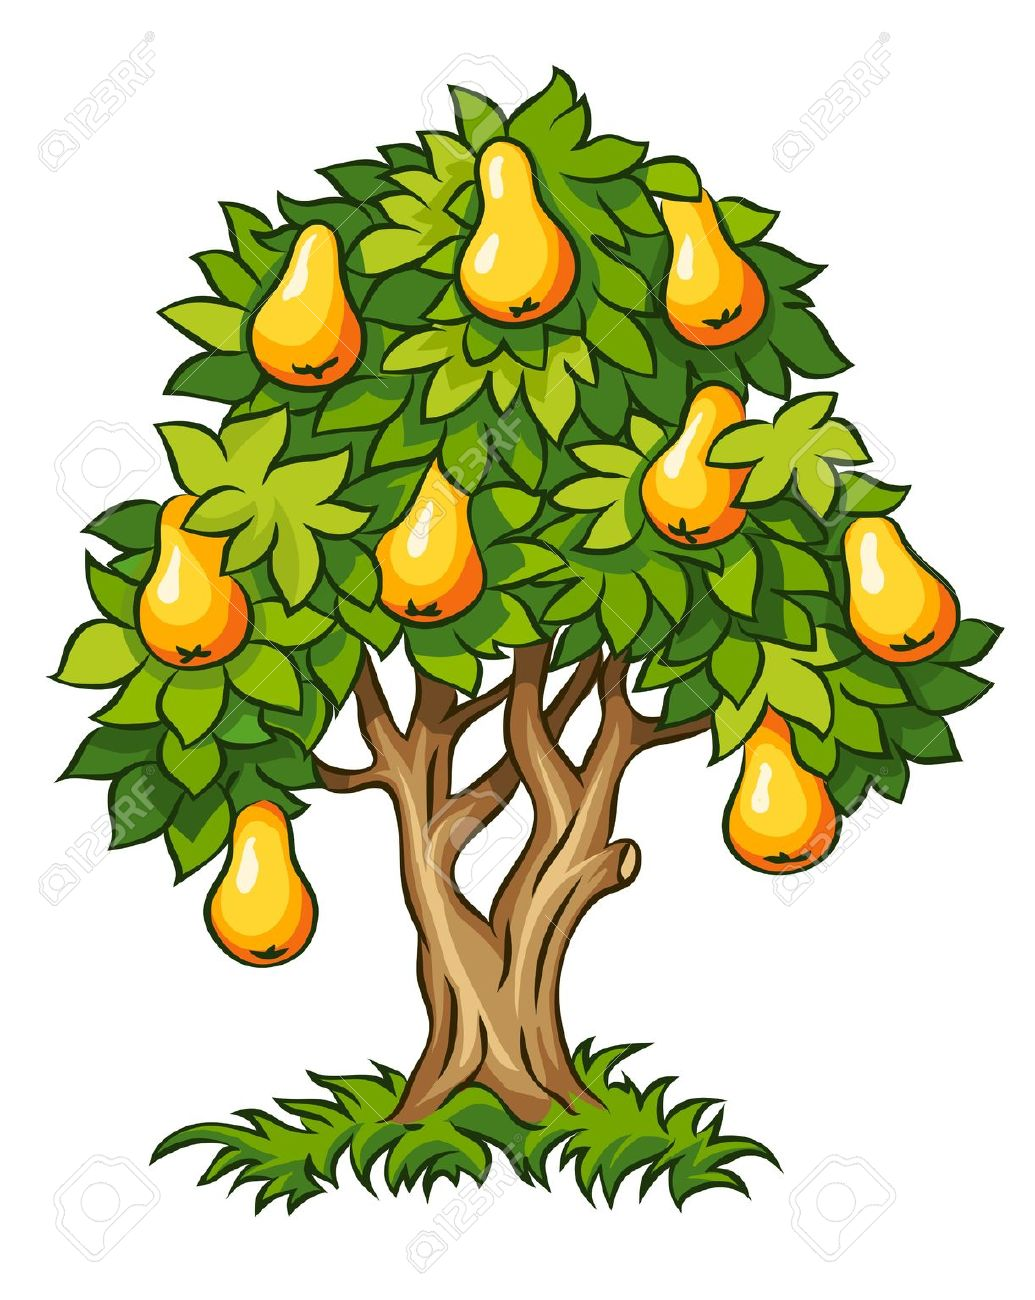 2,377 Pear Tree Stock Vector Illustration And Royalty Free Pear.